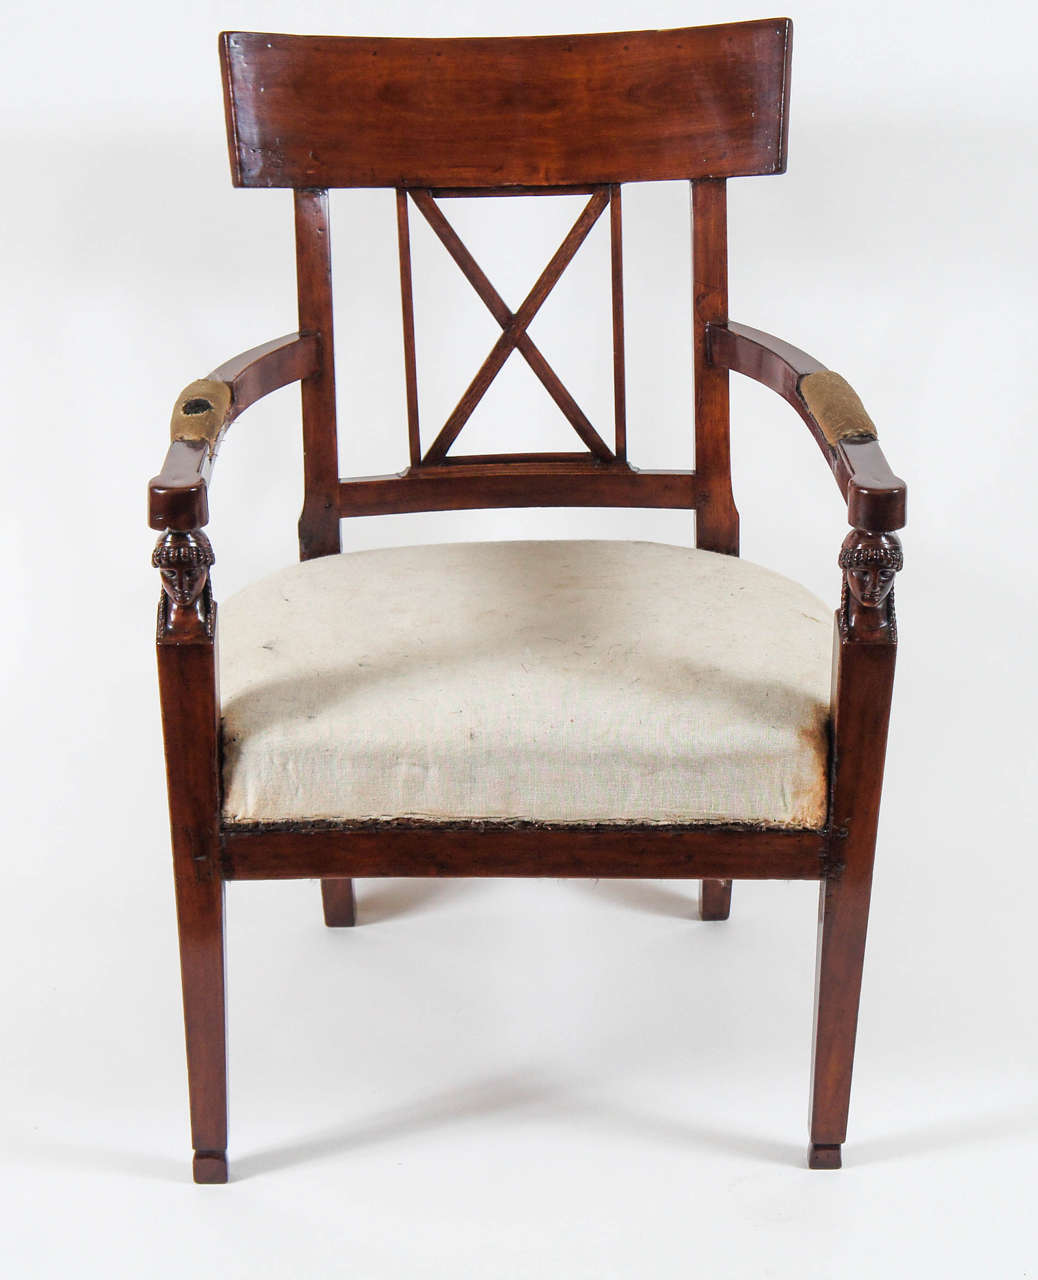 Elegant Italian, French Consulate style and period carved walnut fauteuil having Klismos style tablet form backrest above central X-form open splat, arms with padded rests terminating atop female bust term form front supports with gently splayed